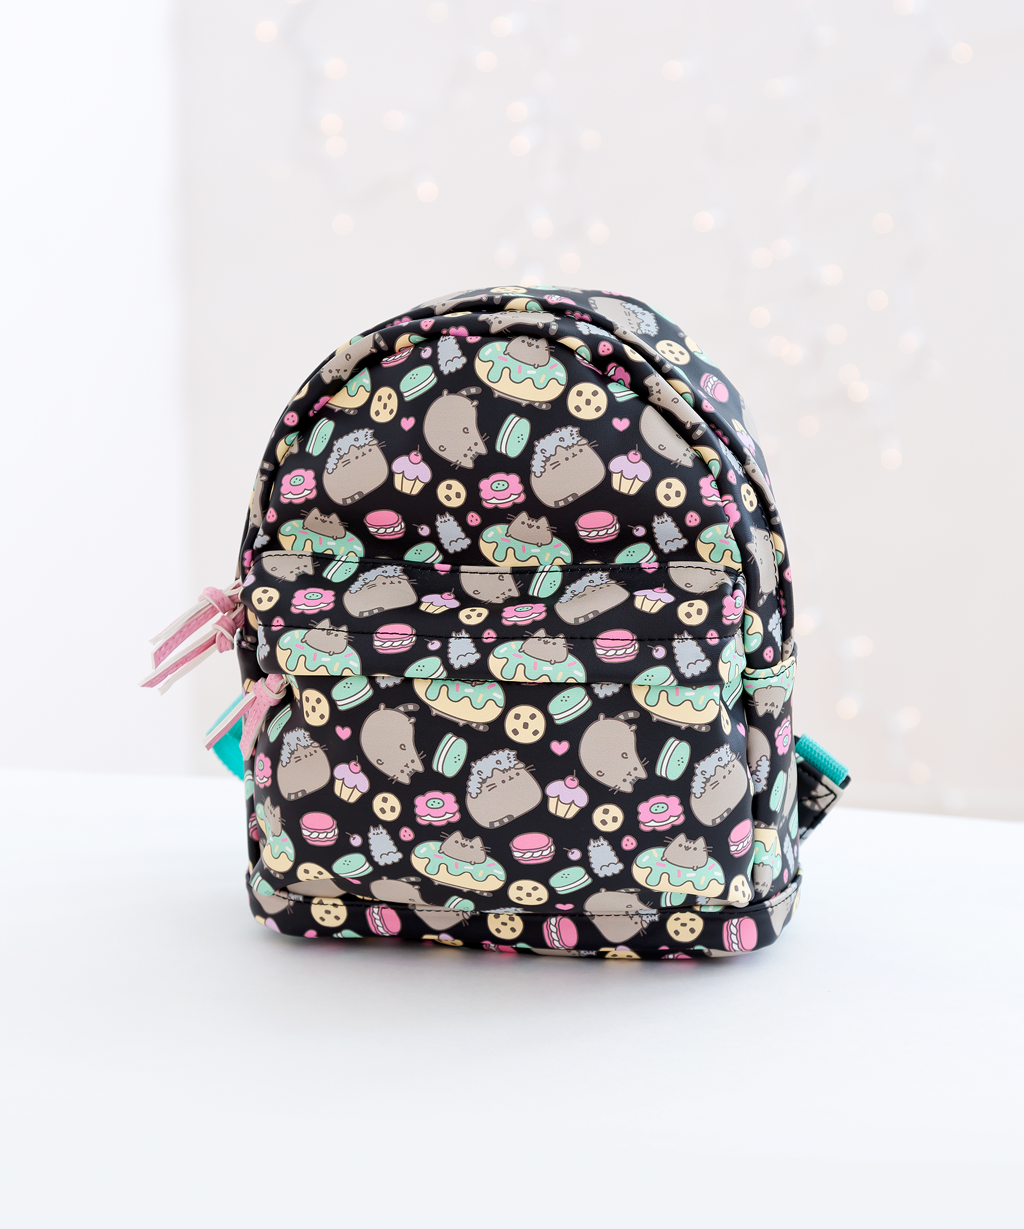 704403ac75f6 Pusheen Sweets Mini Backpack